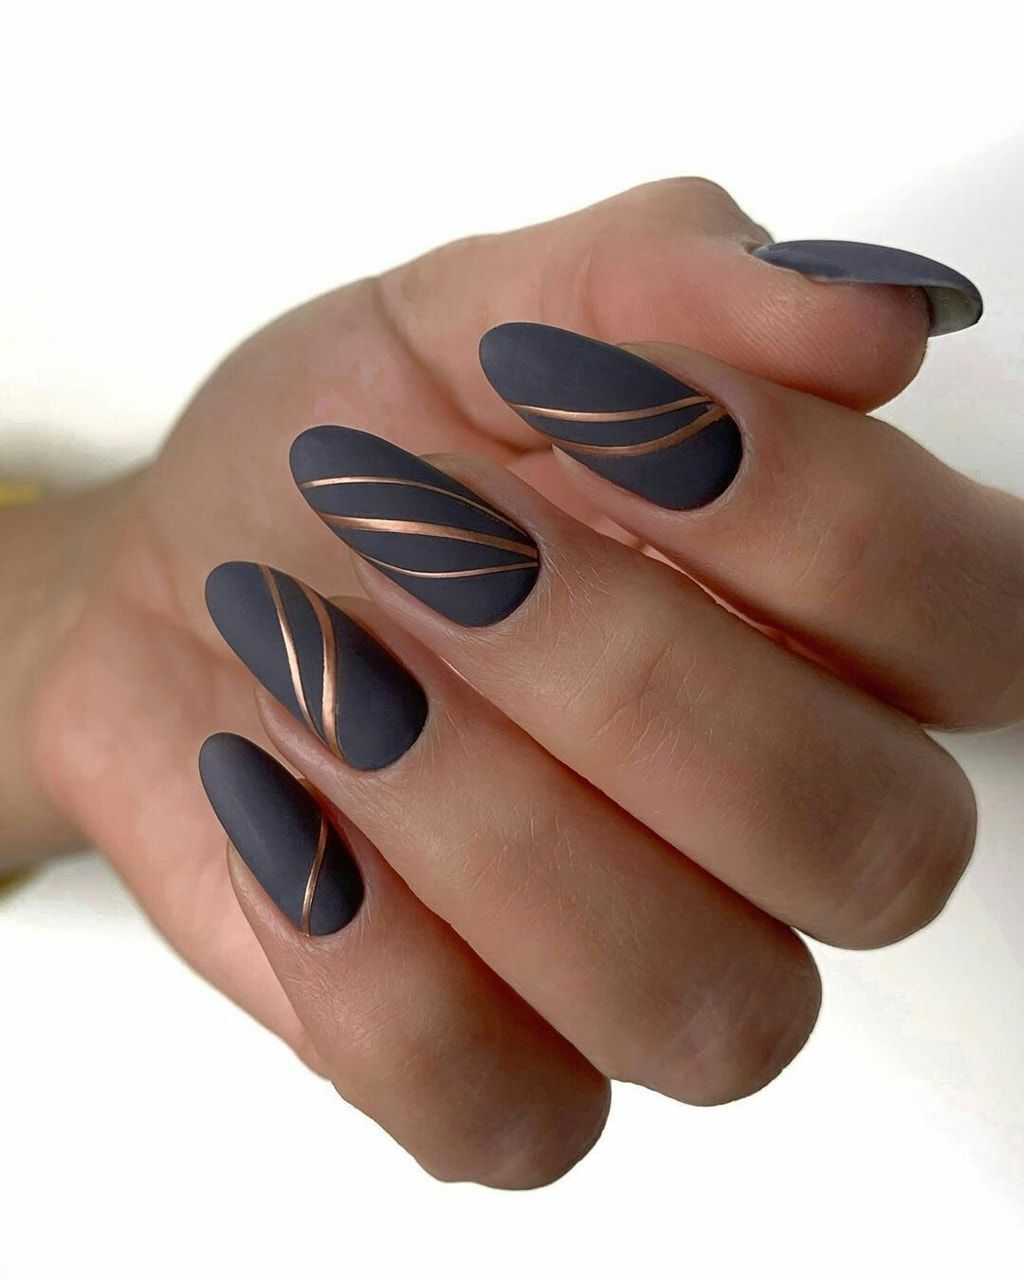 45 Classy Spring Nail Color Designs For Your Exceptional Style In 2020 Zelene Nehty Gelove Nehty Design Nehtu